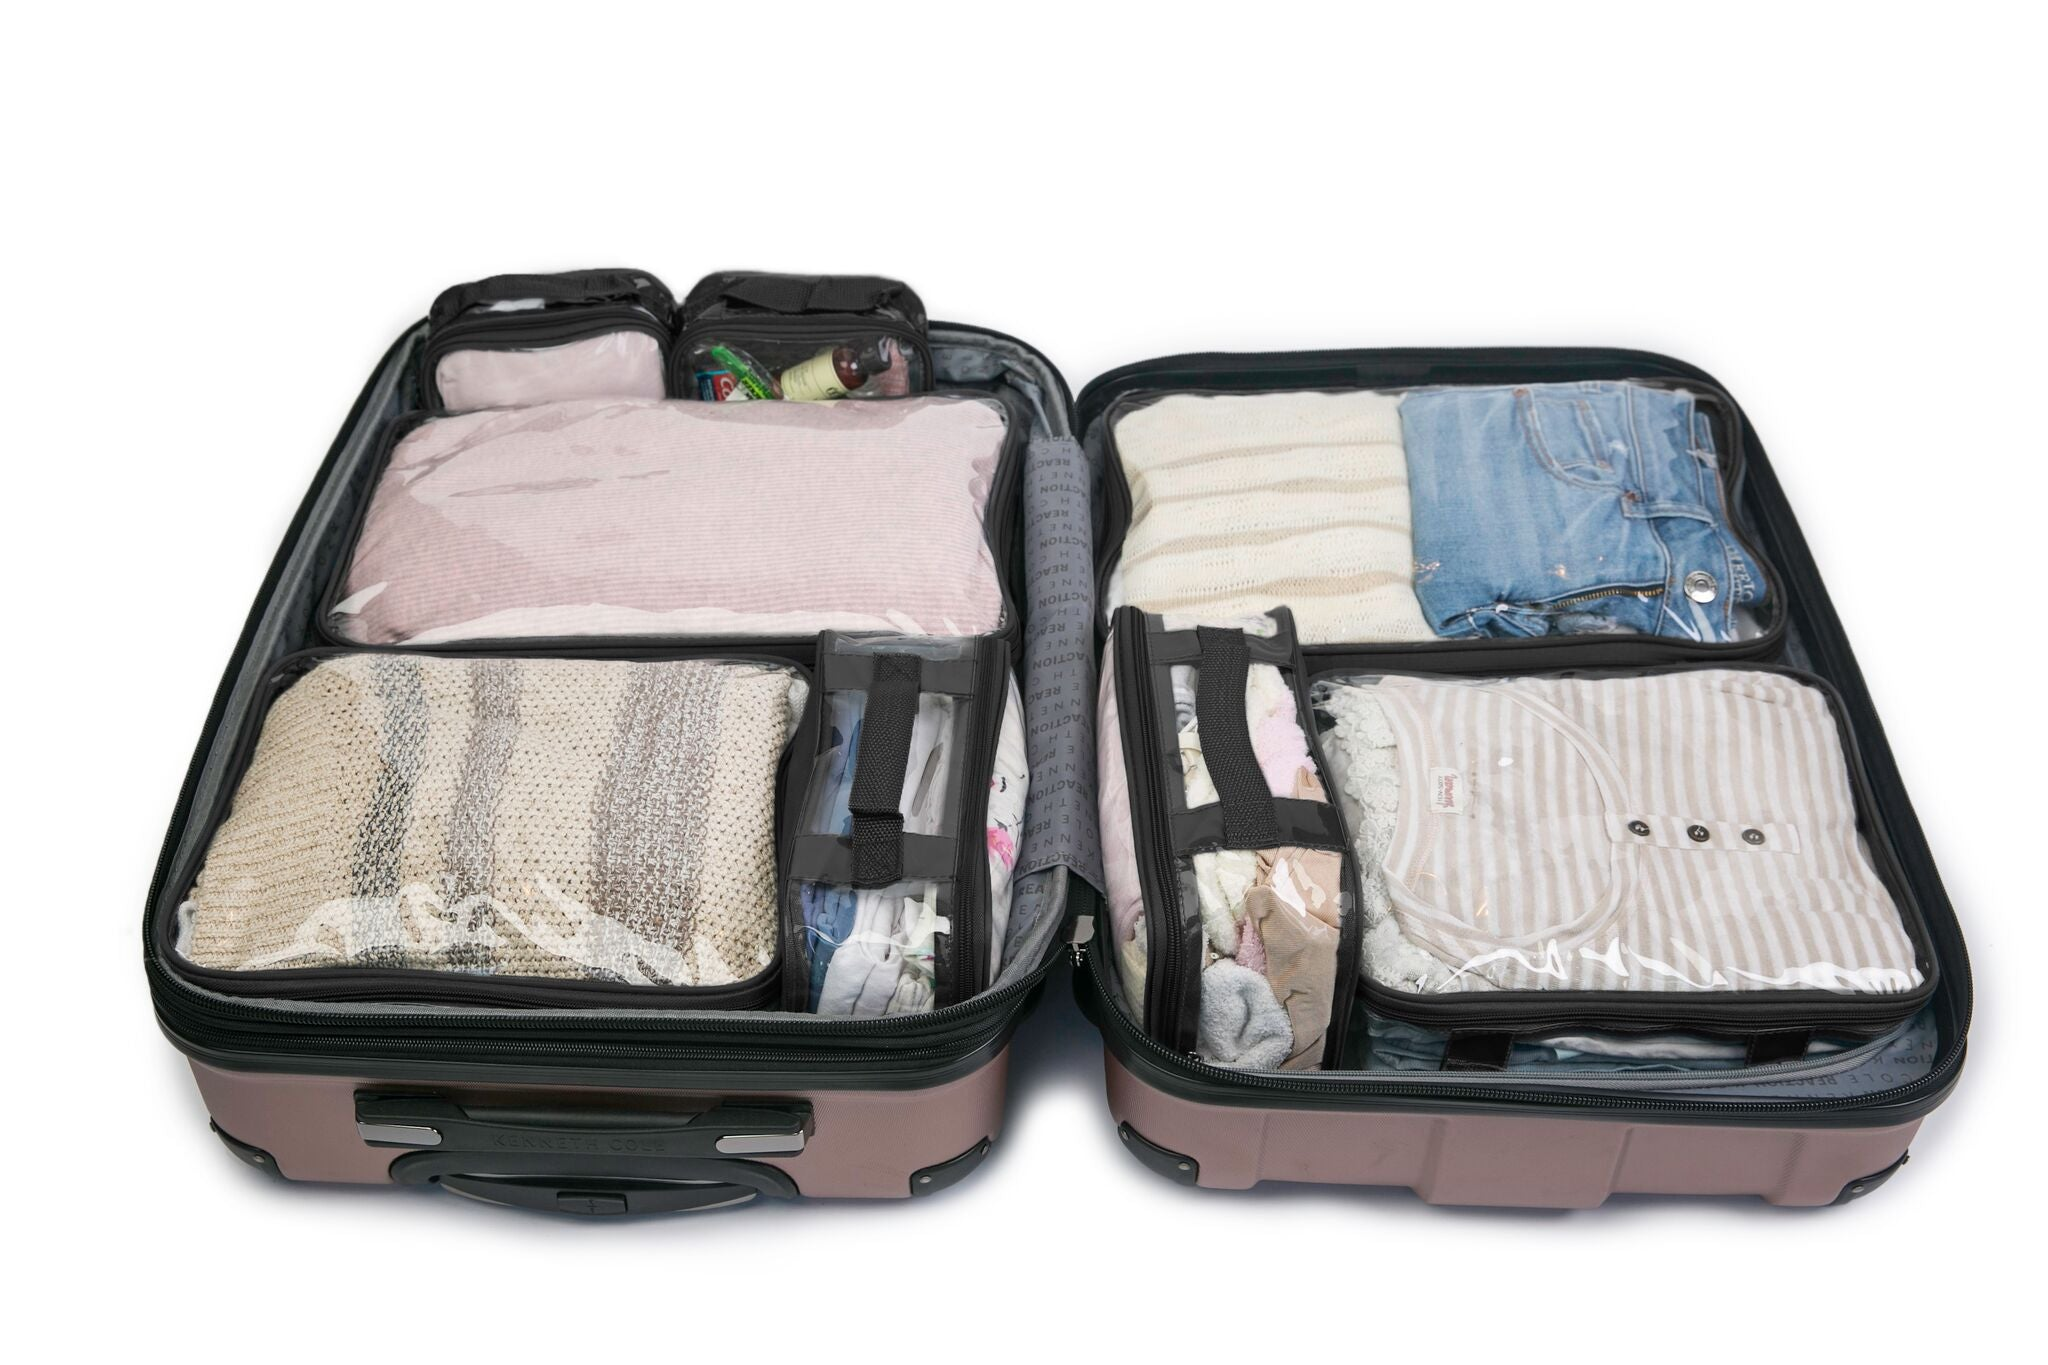 Black packing cubes inside suitcase